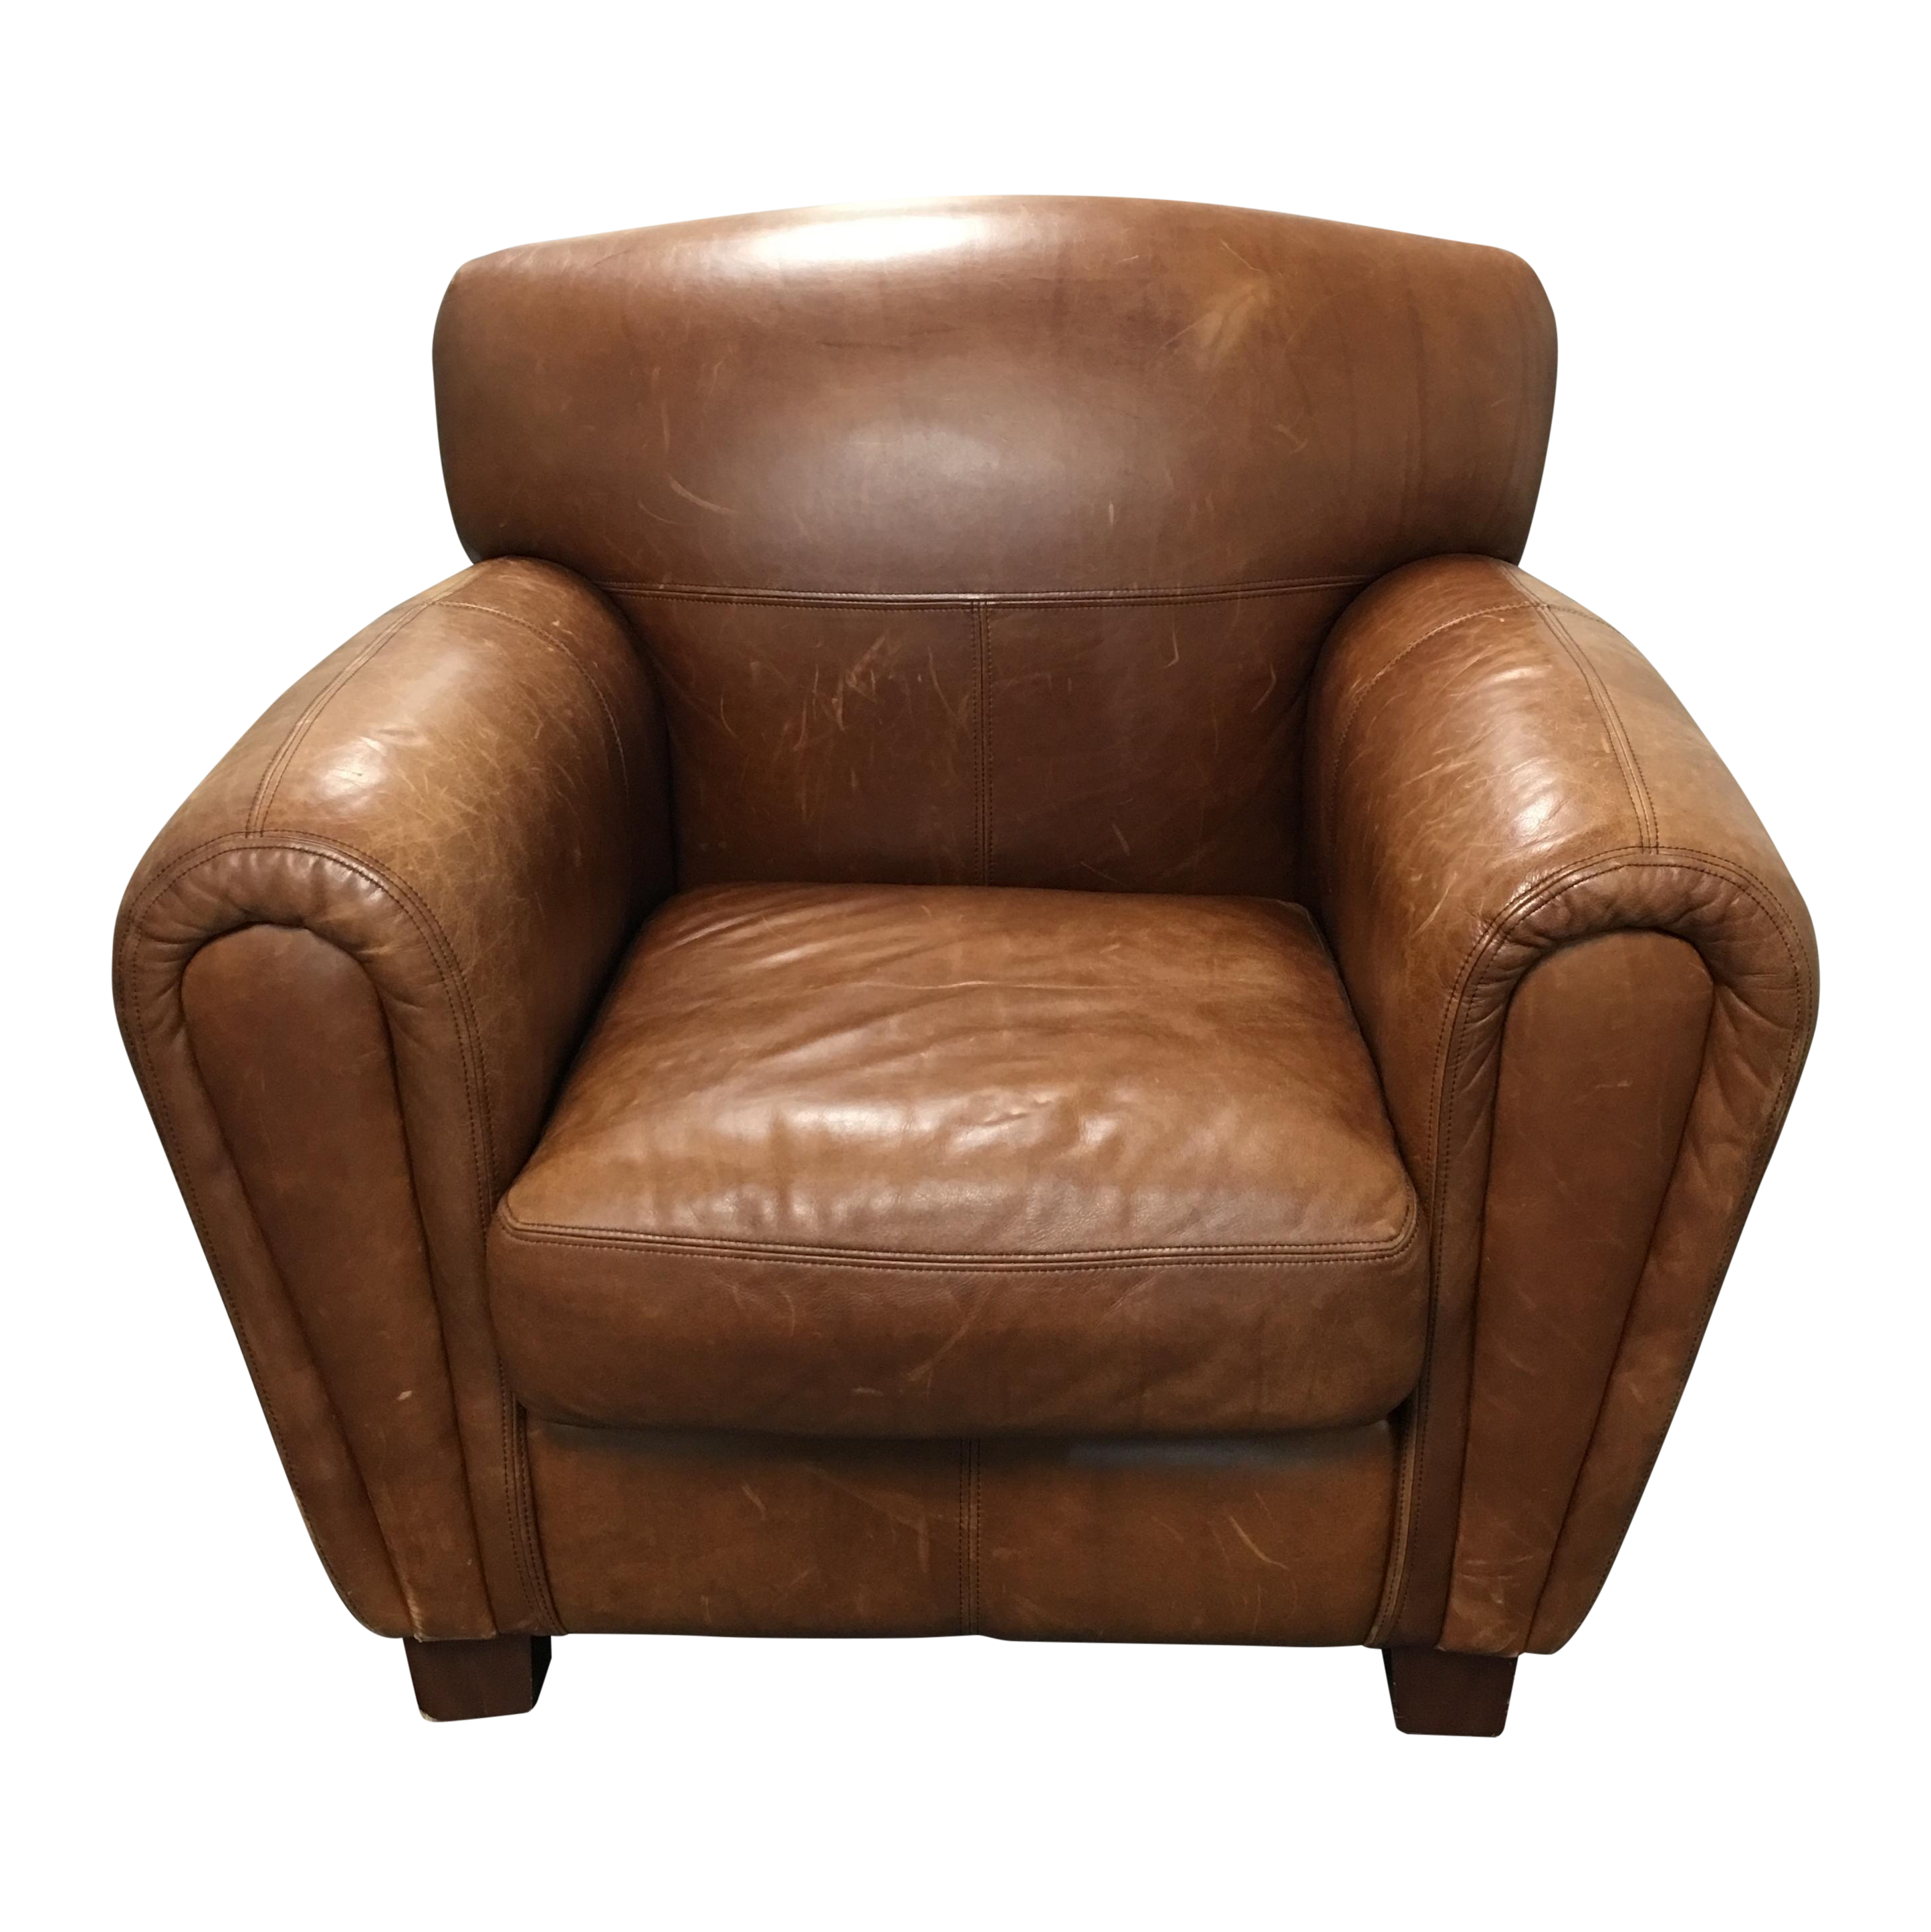 Thomasville Cognac Leather Club Chair